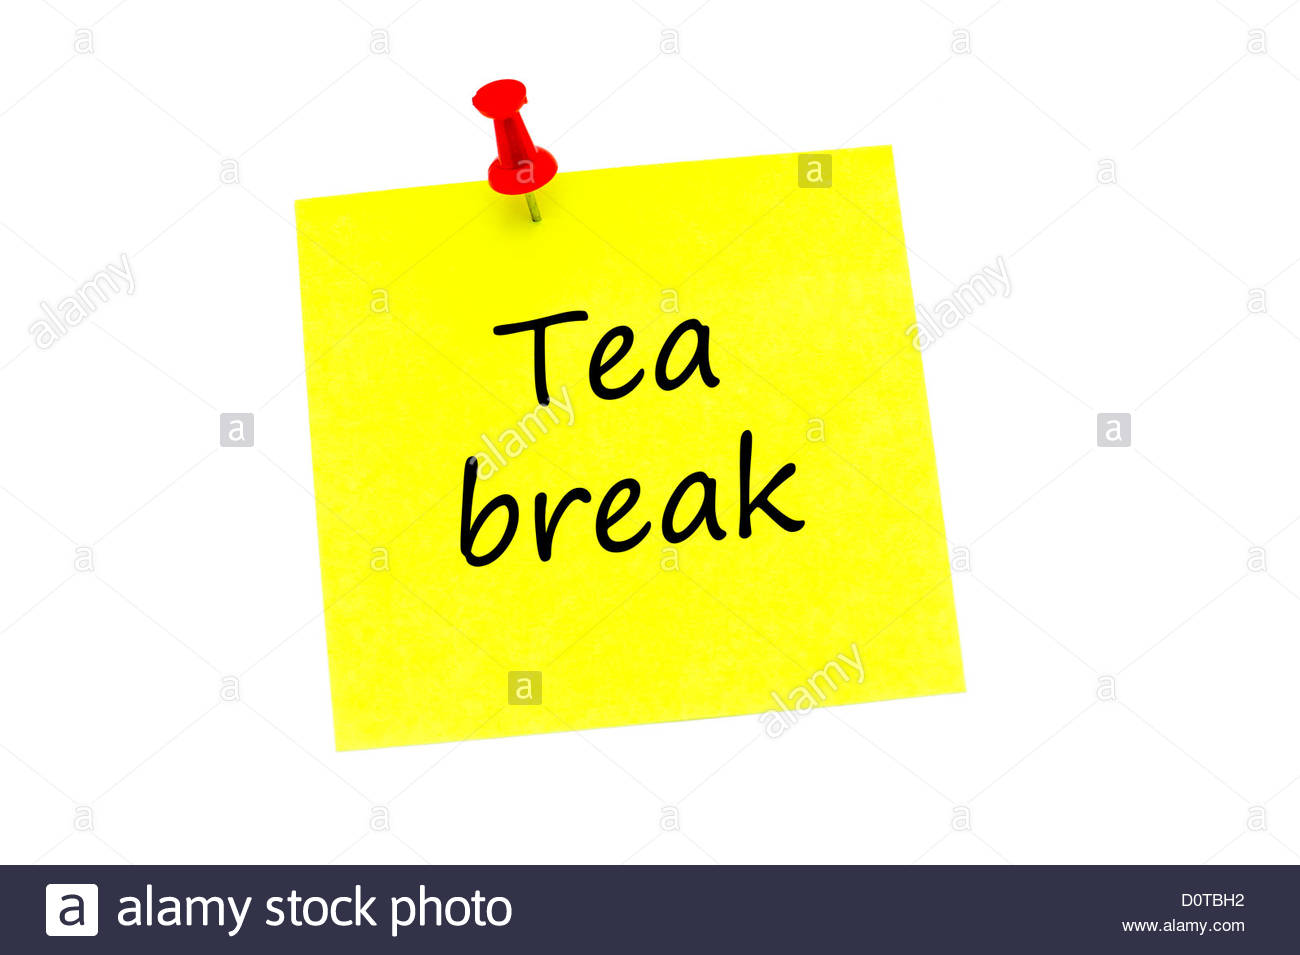 Tea break written on a yellow post it note, held in place with a red push pin and isolated on a white background. - Stock Image